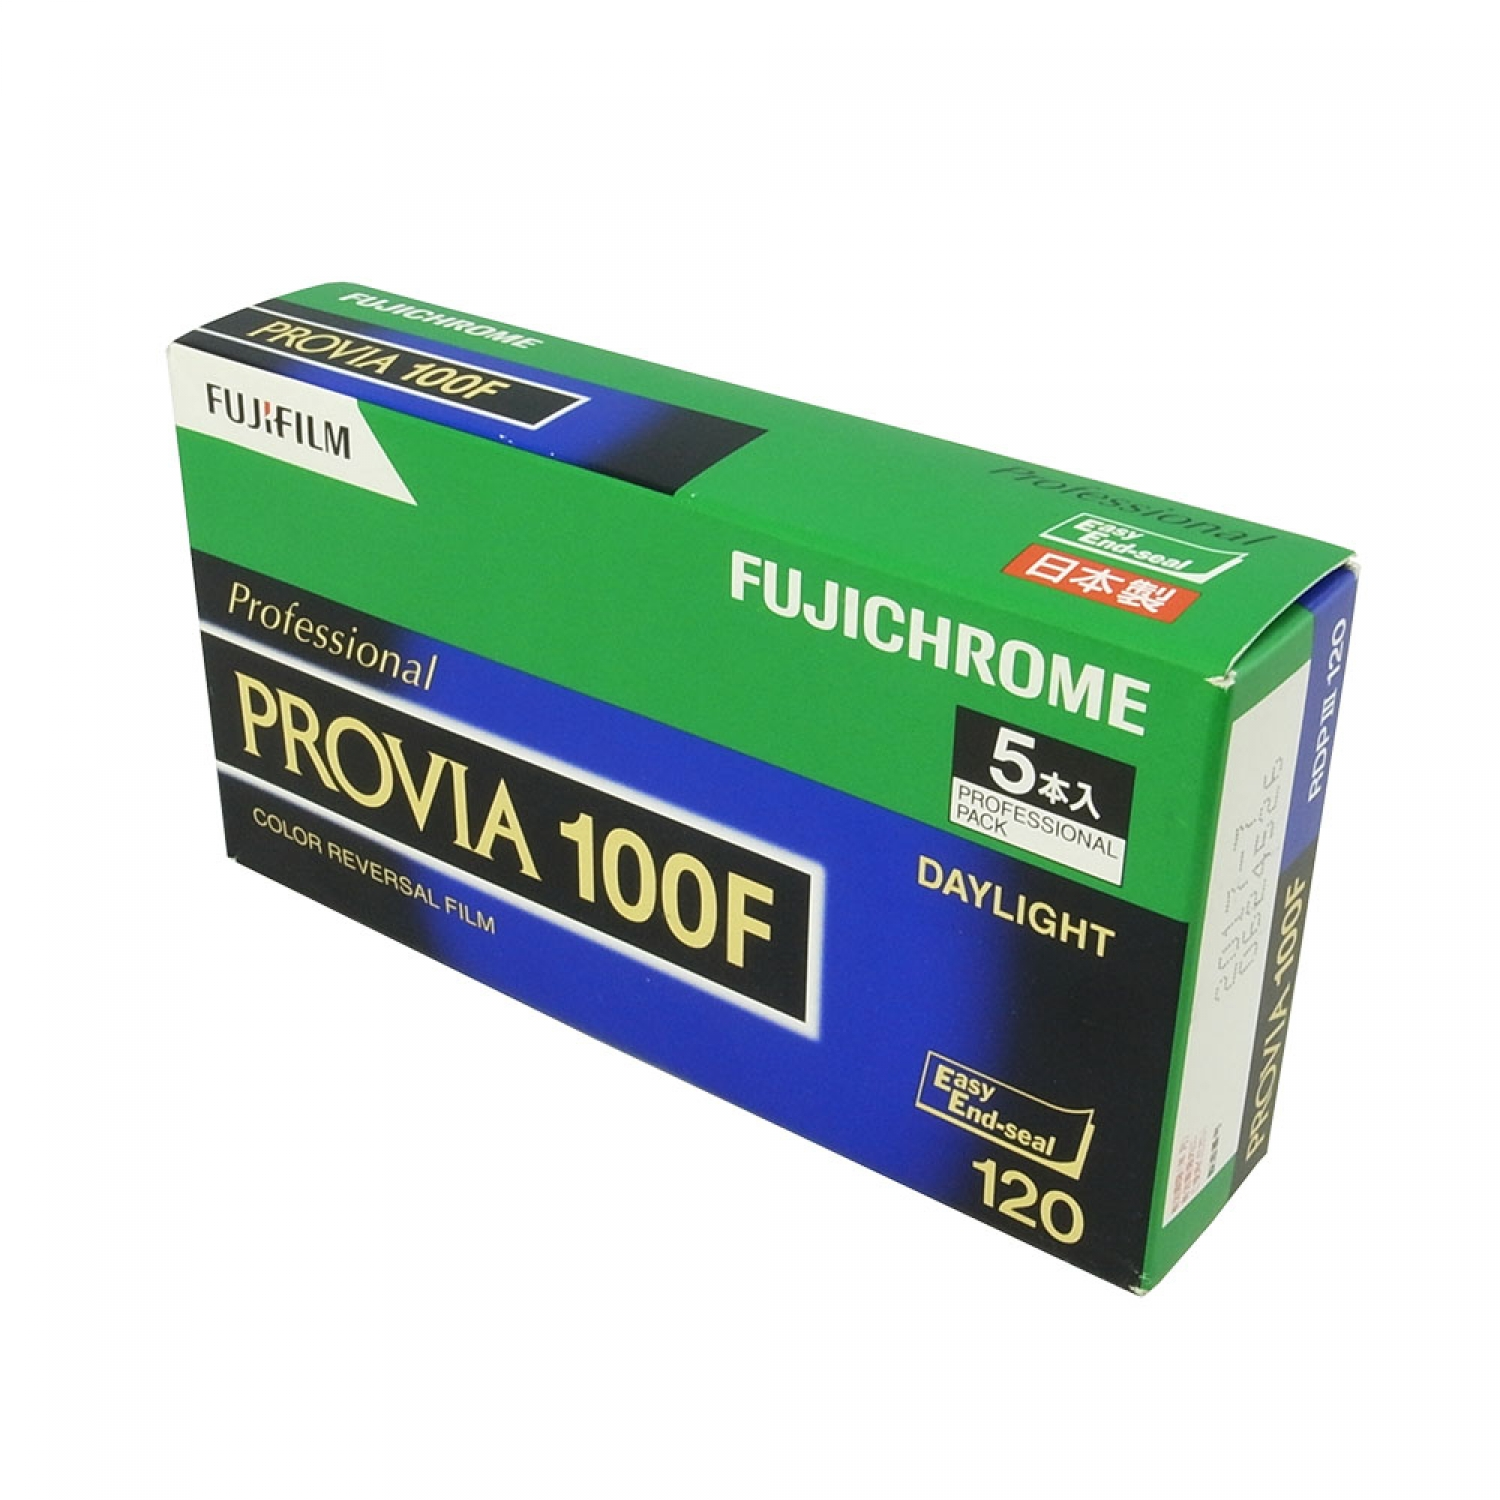 Fujifilm Fujichrome Provia 100F (120) 5-Pack Color Reversal Film